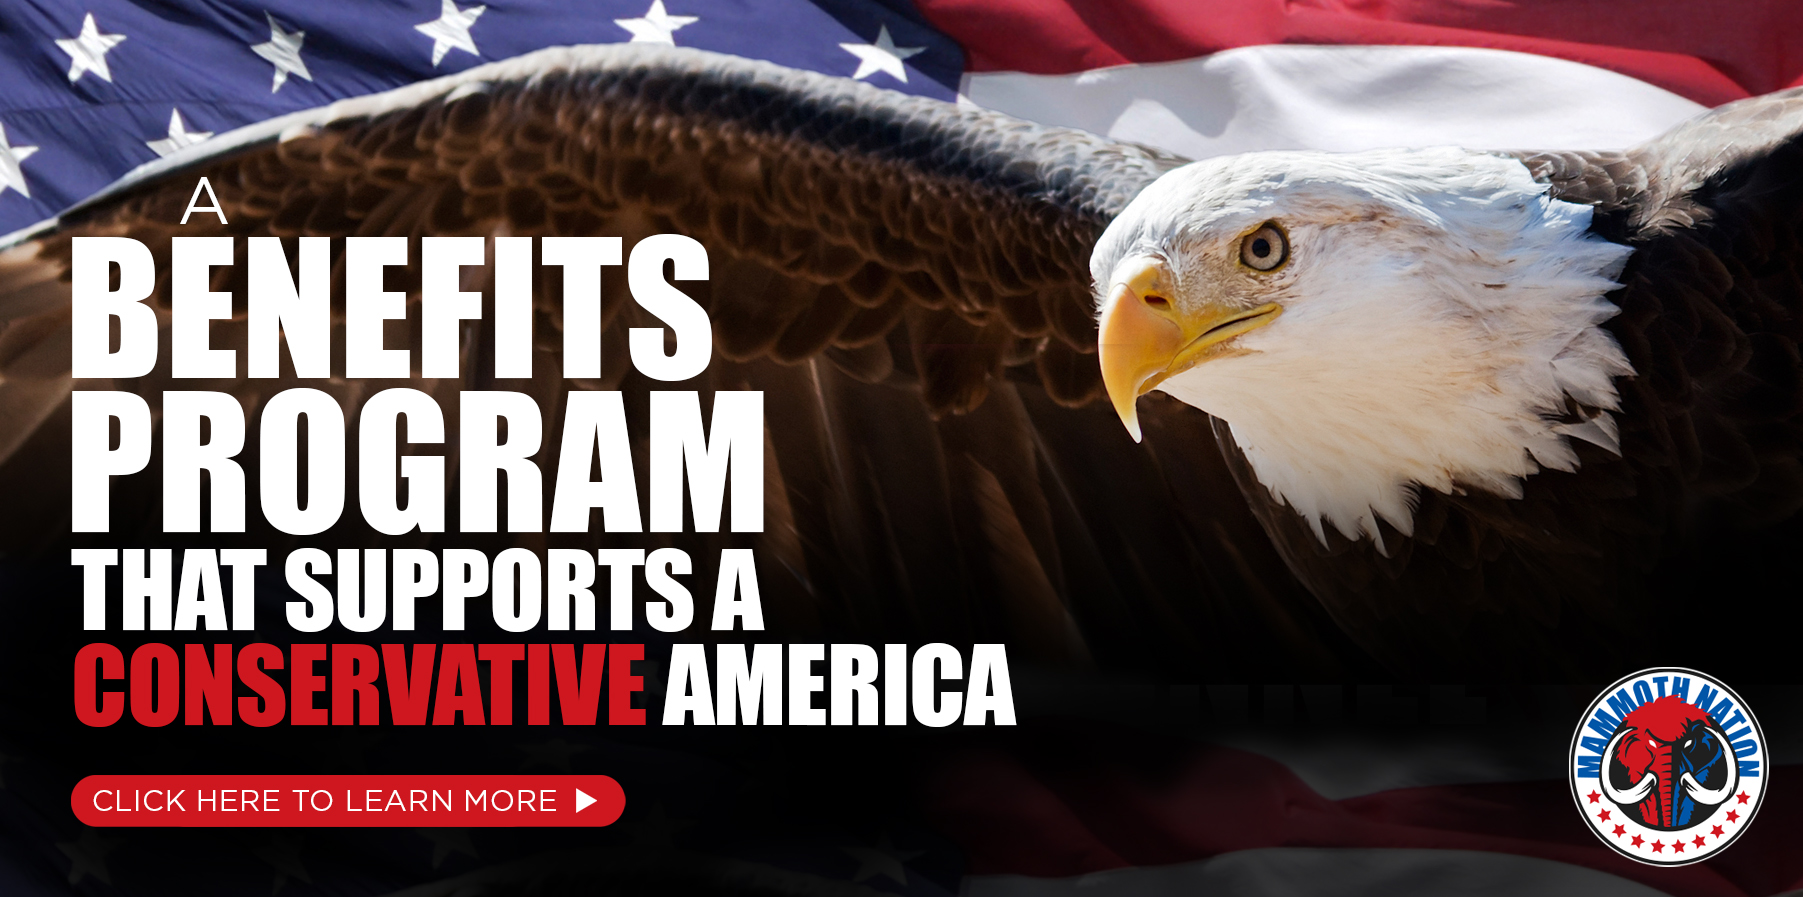 A benefit program that supports a conservative America